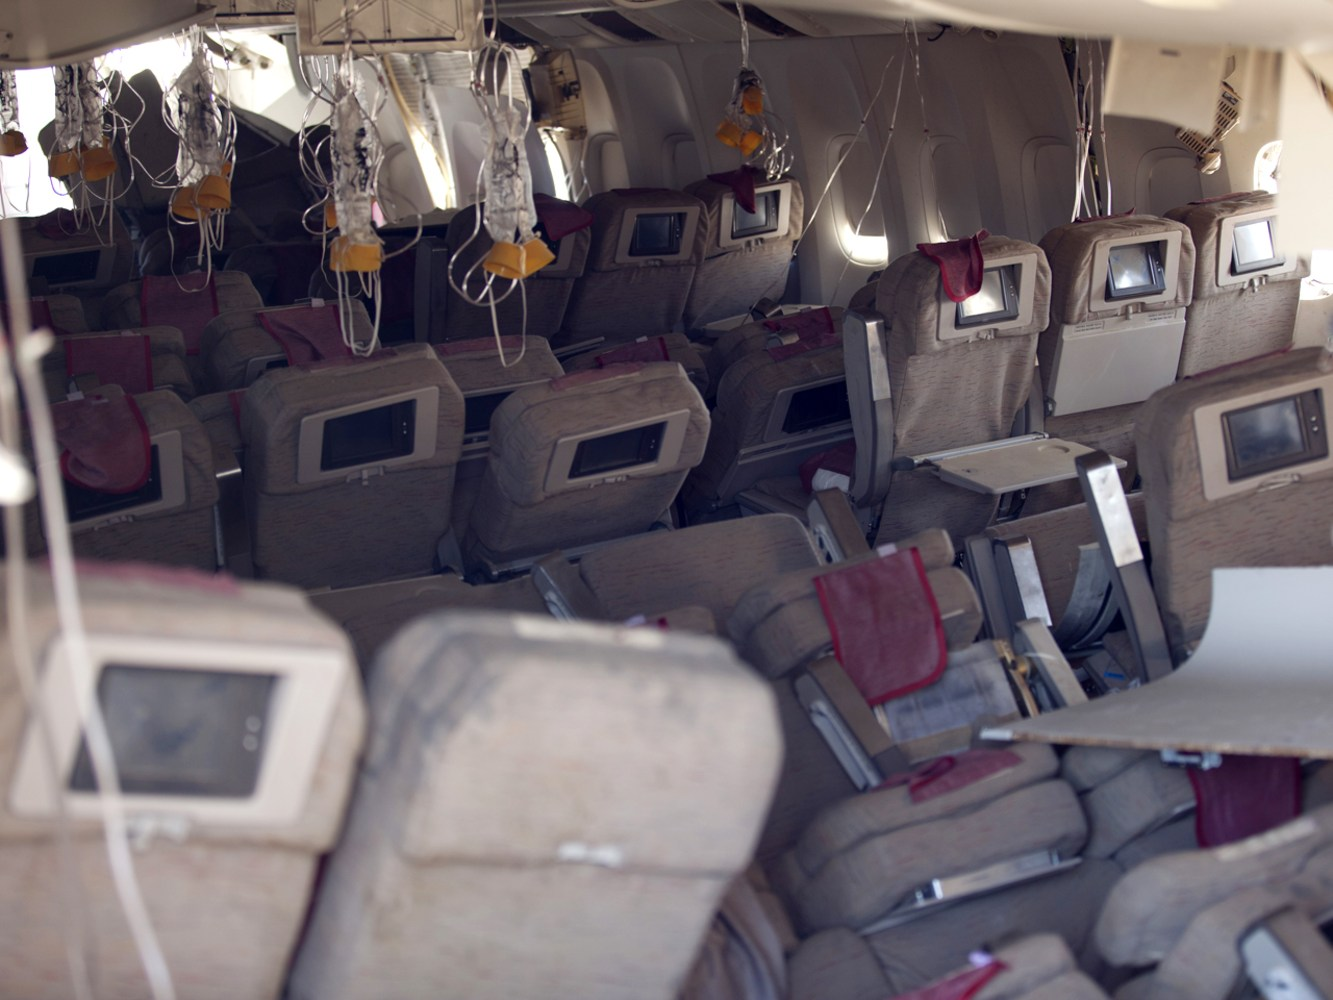 Boeing safety features may have saved passengers - NBC News